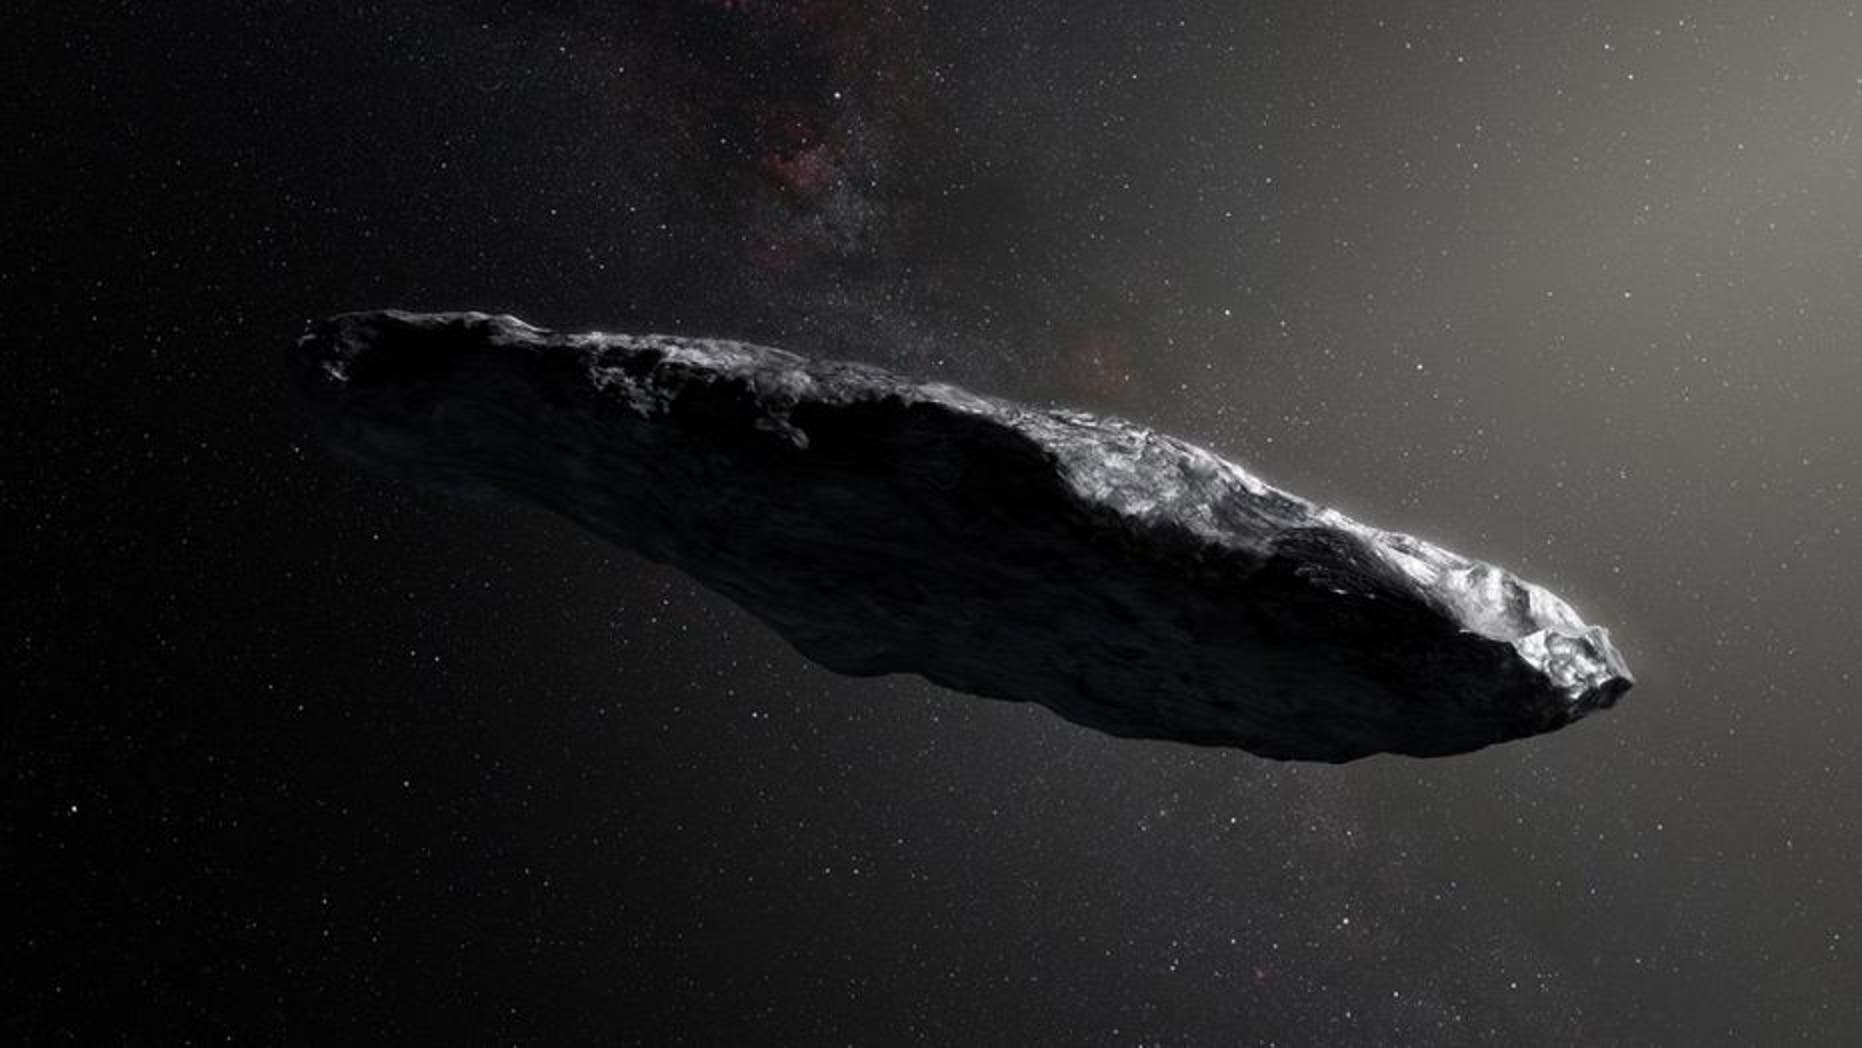 Scientists are now arguing about whether Oumuamua was sent by aliens